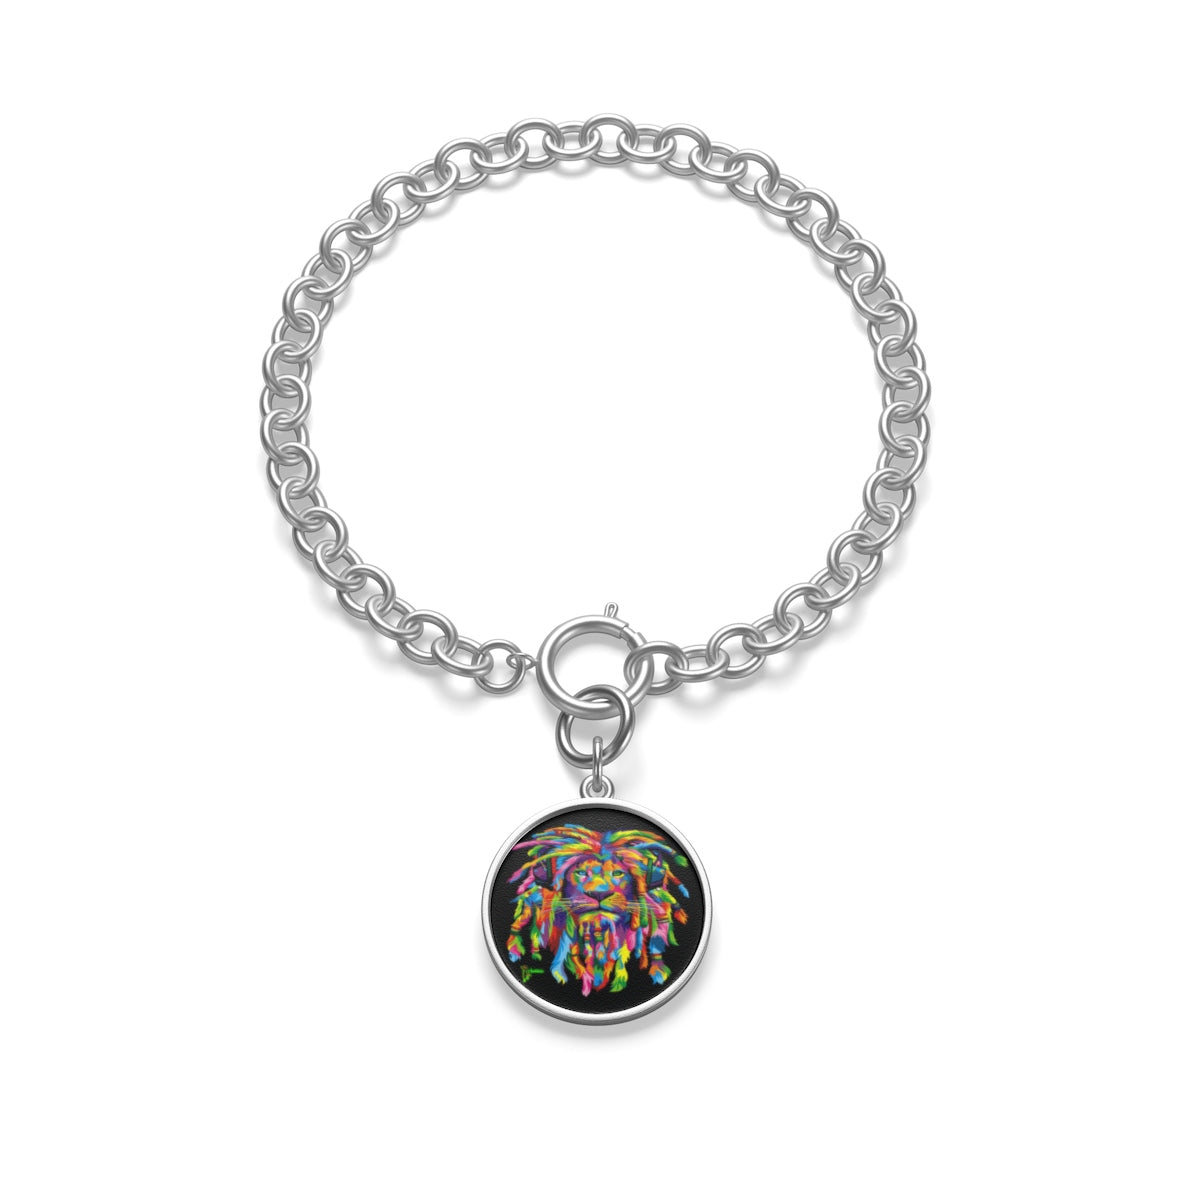 One Size Bracelet Diameter, in 2.55 Coin Pendant Diameter, in 0.66 Tile Pendant Diameter, in 0.66 This chunky chain bracelet emphasizes the delicate, vibrant and sensual personality of its wearer. Made in USA.